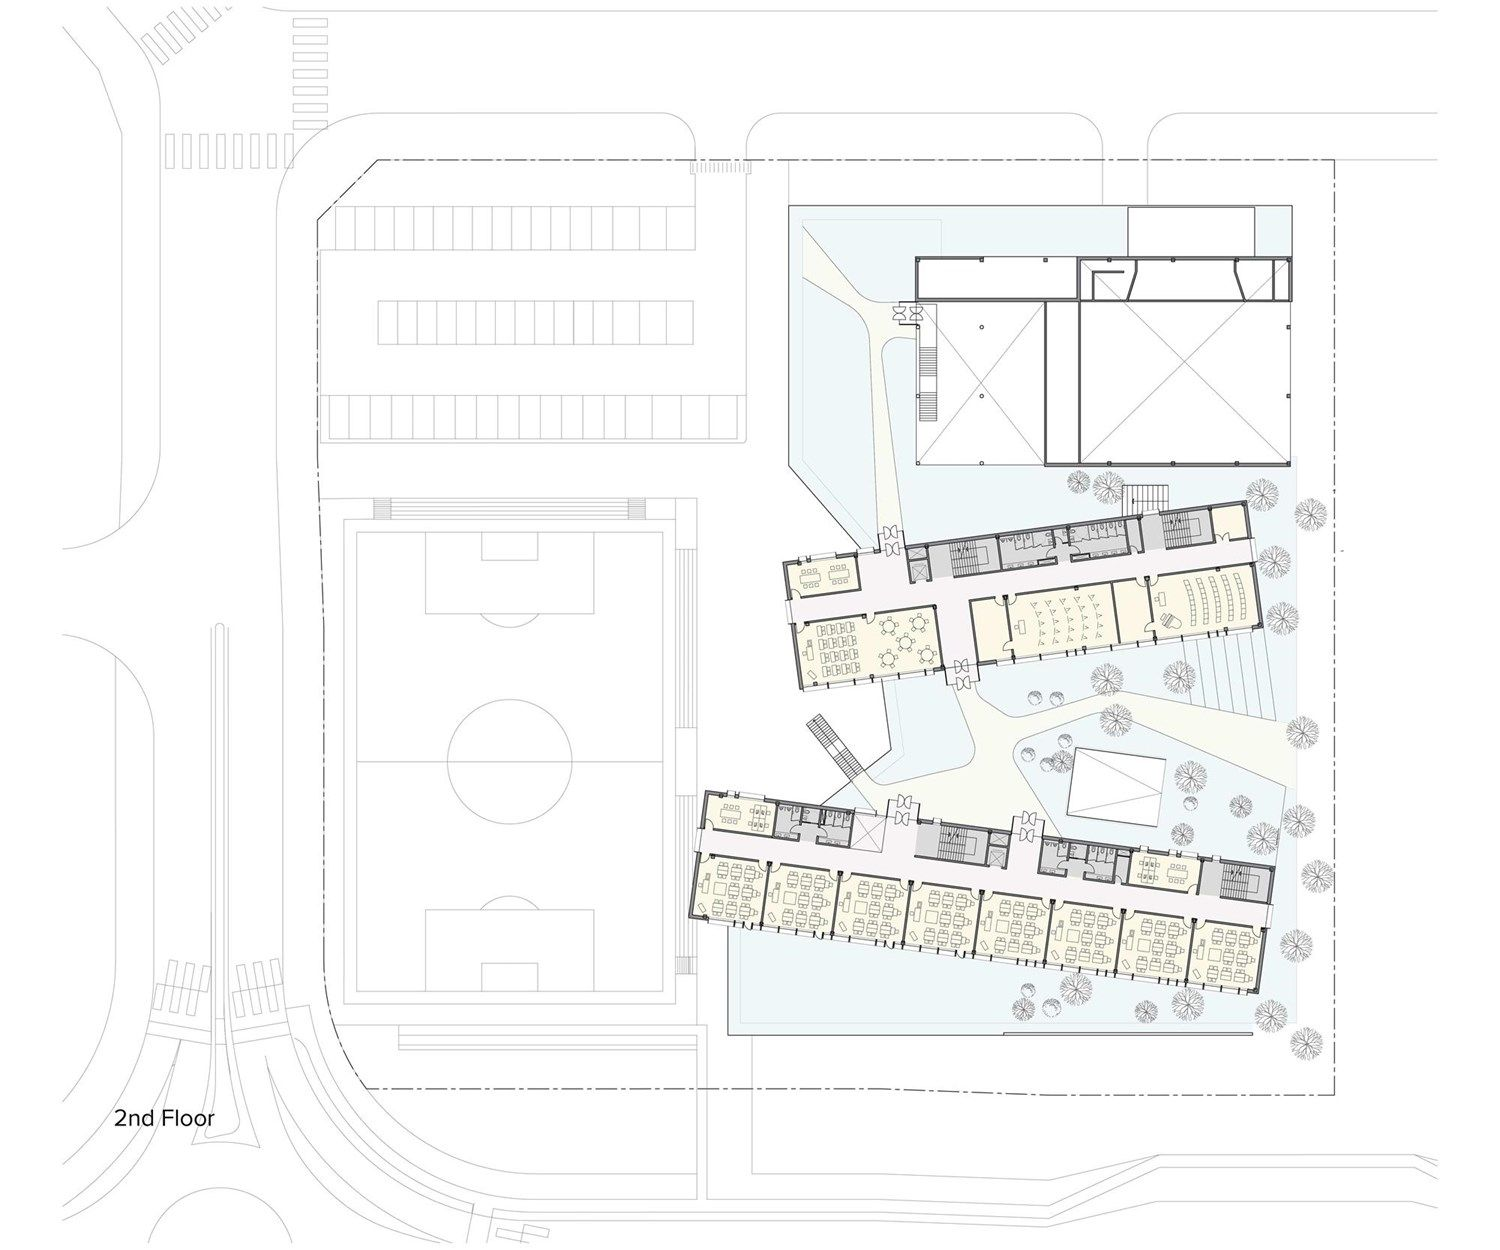 Competition Design For A New Elementary School In Baegot